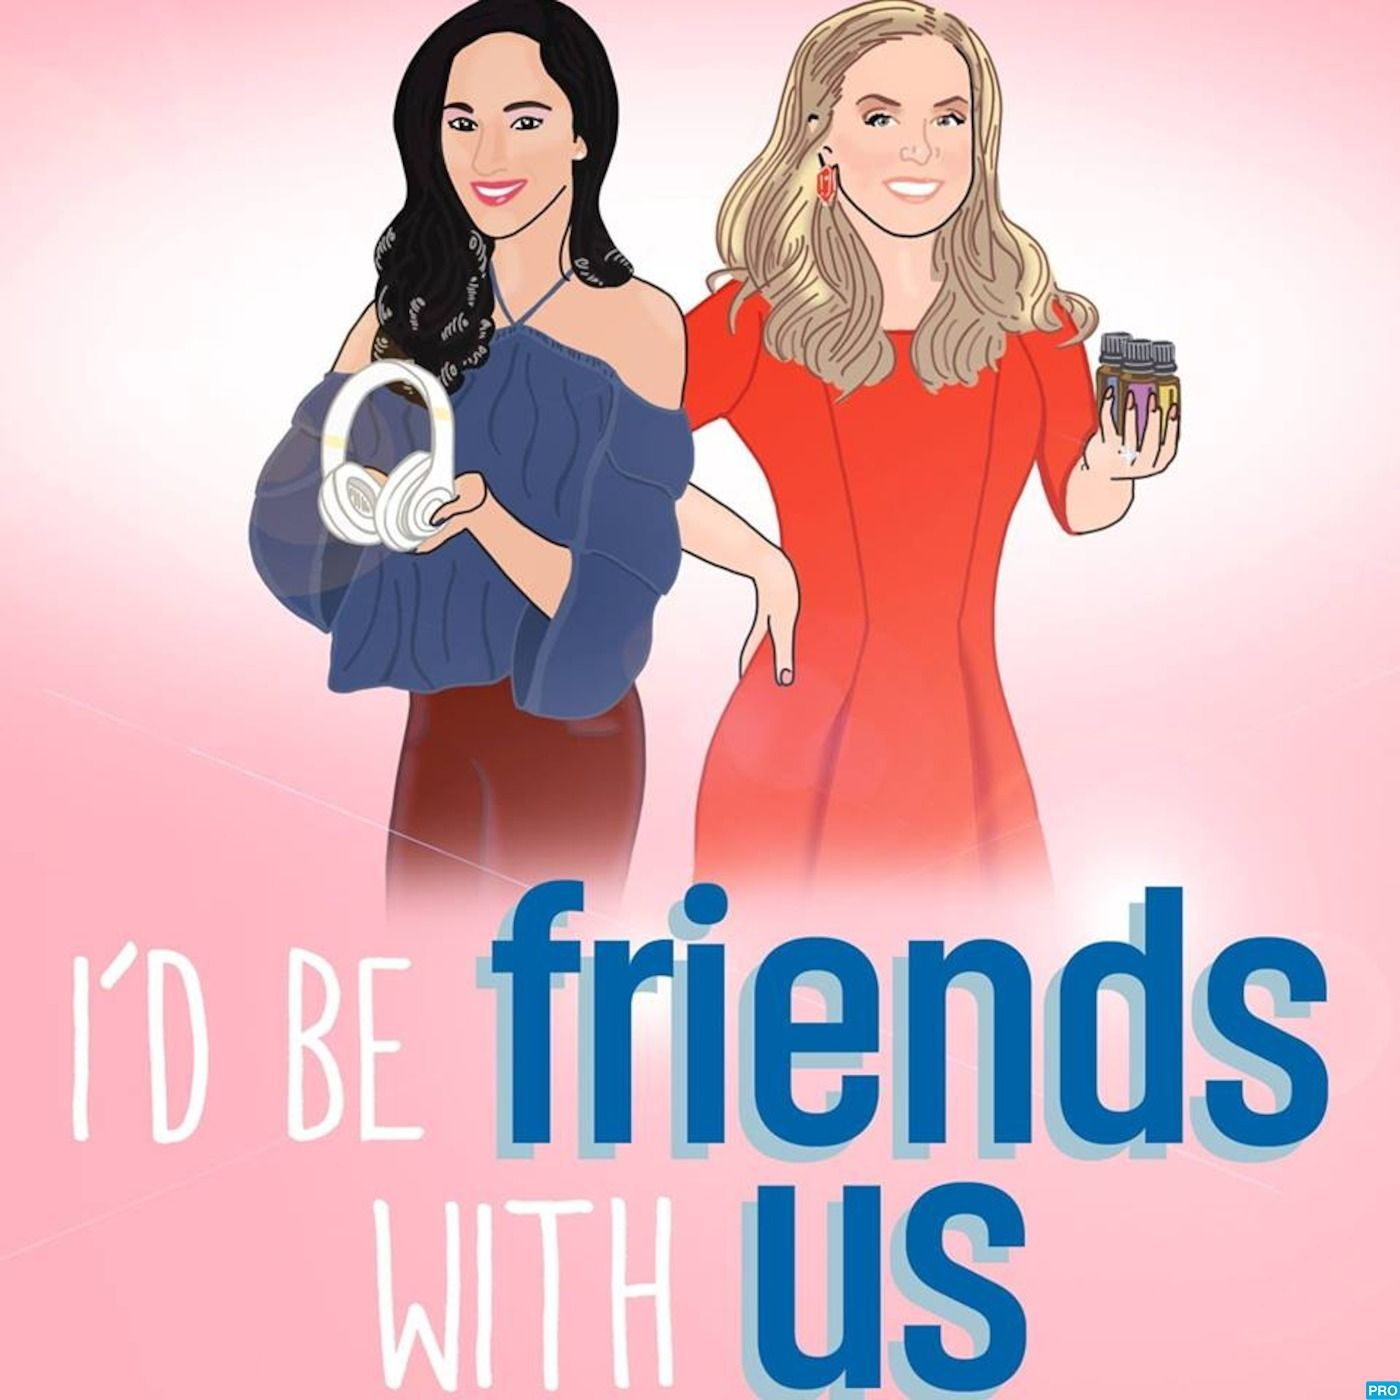 A Message from I'd Be Friends With Us